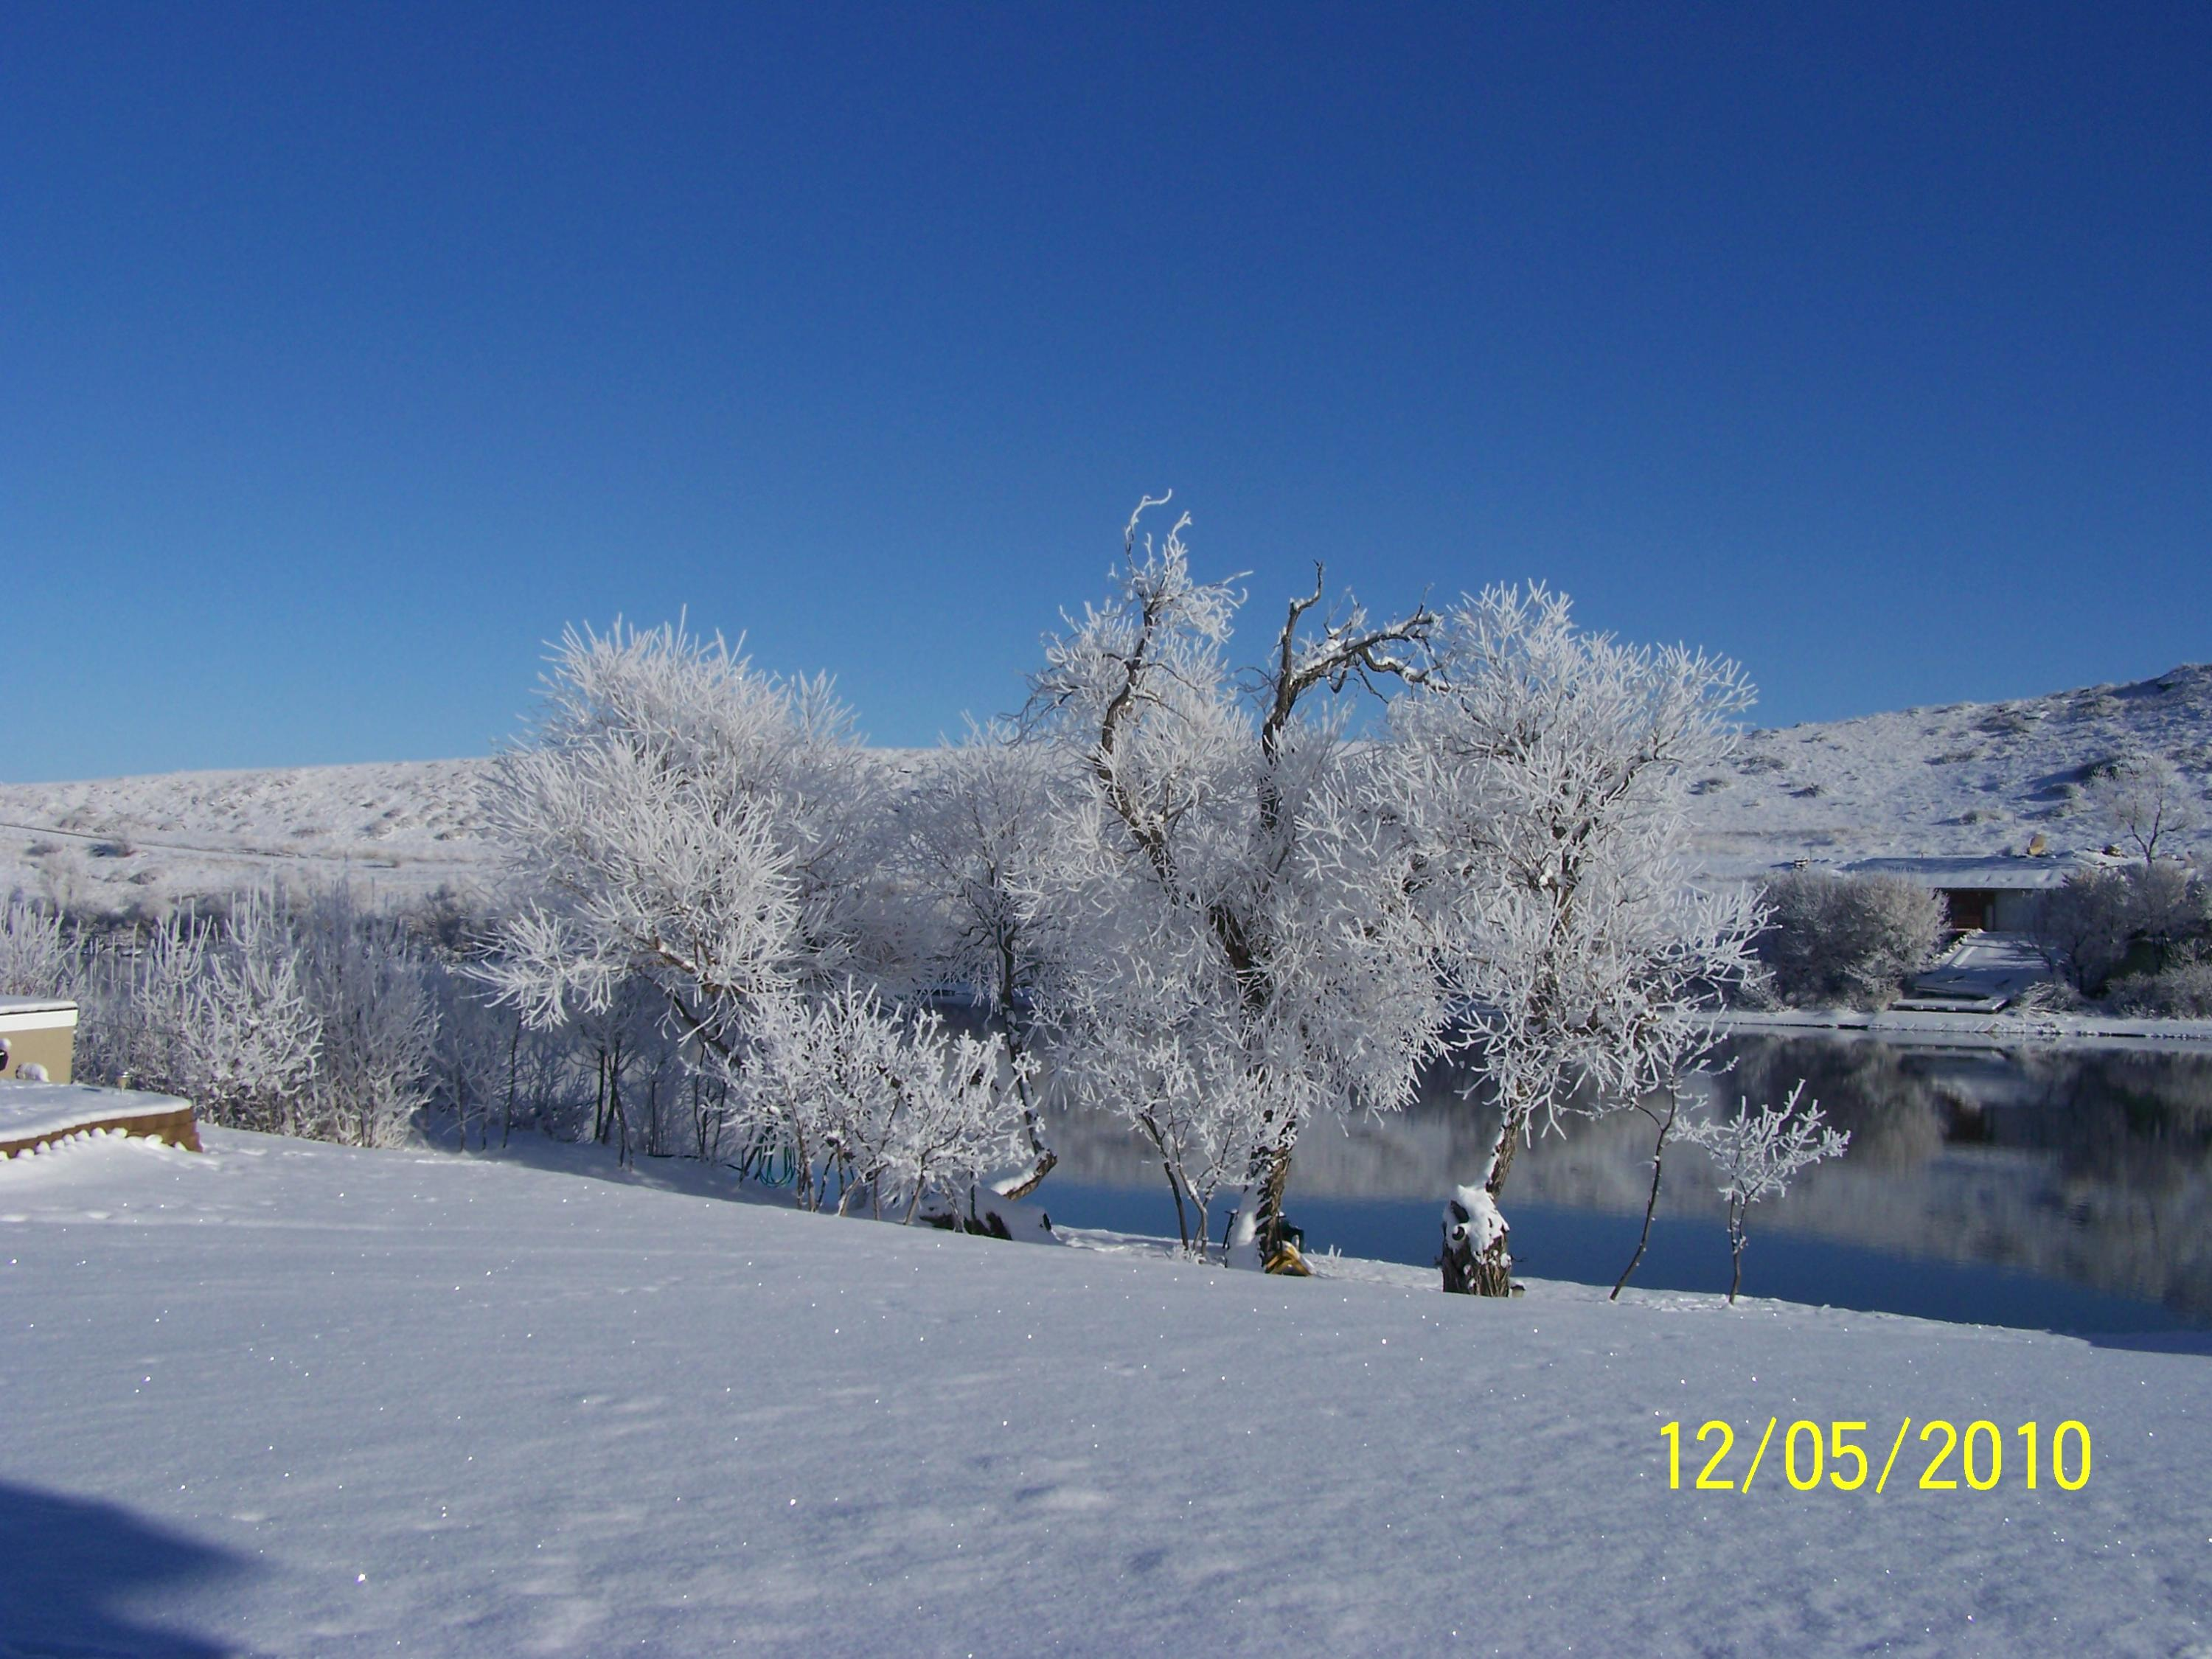 SNOW TREES ON RIVER